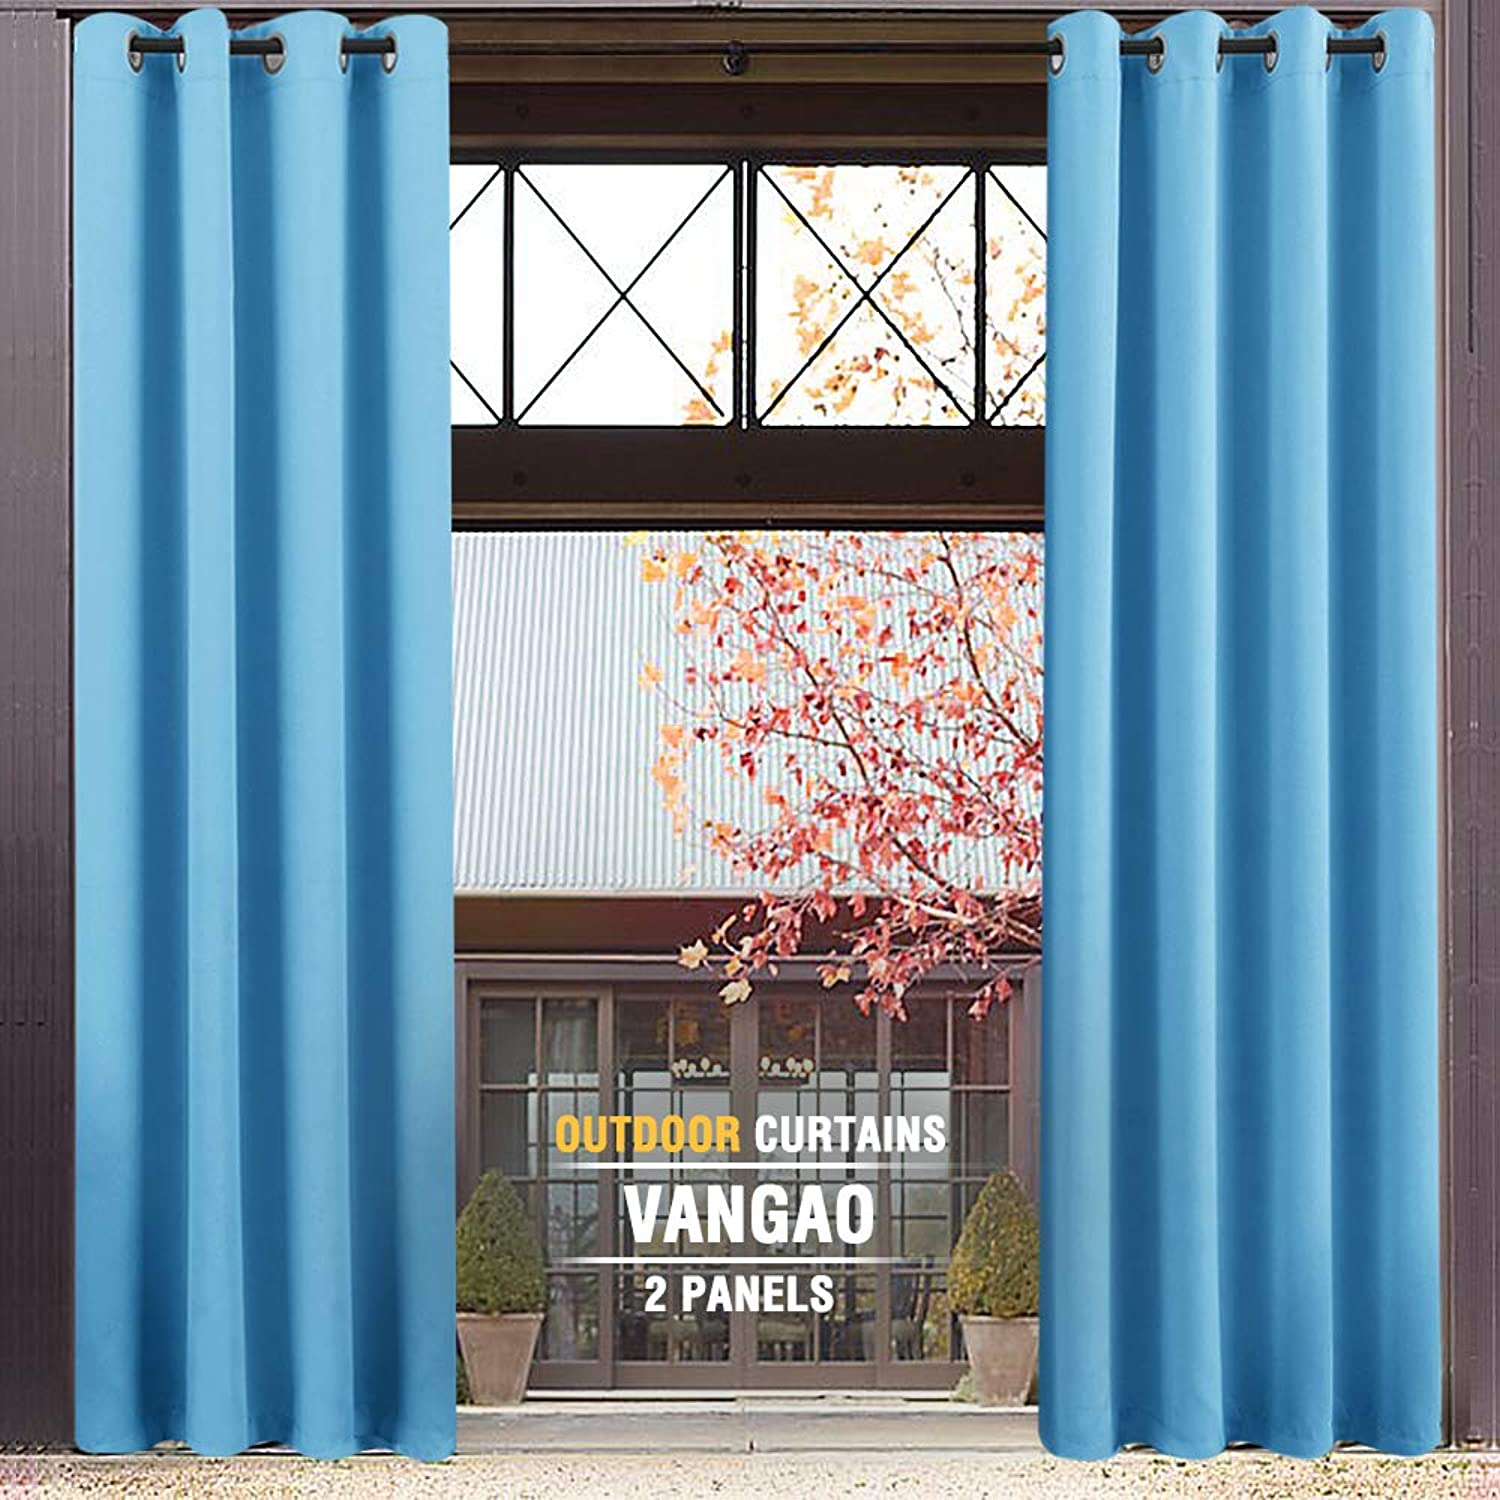 Kids Room Darkening Curtains 63 inches Long Triple Weave Nursery Curtain Panels for Boy's Room Thermal Insulated Living Room Blackout Drapes, Grommet Top, 1 Pair, Royal bluee